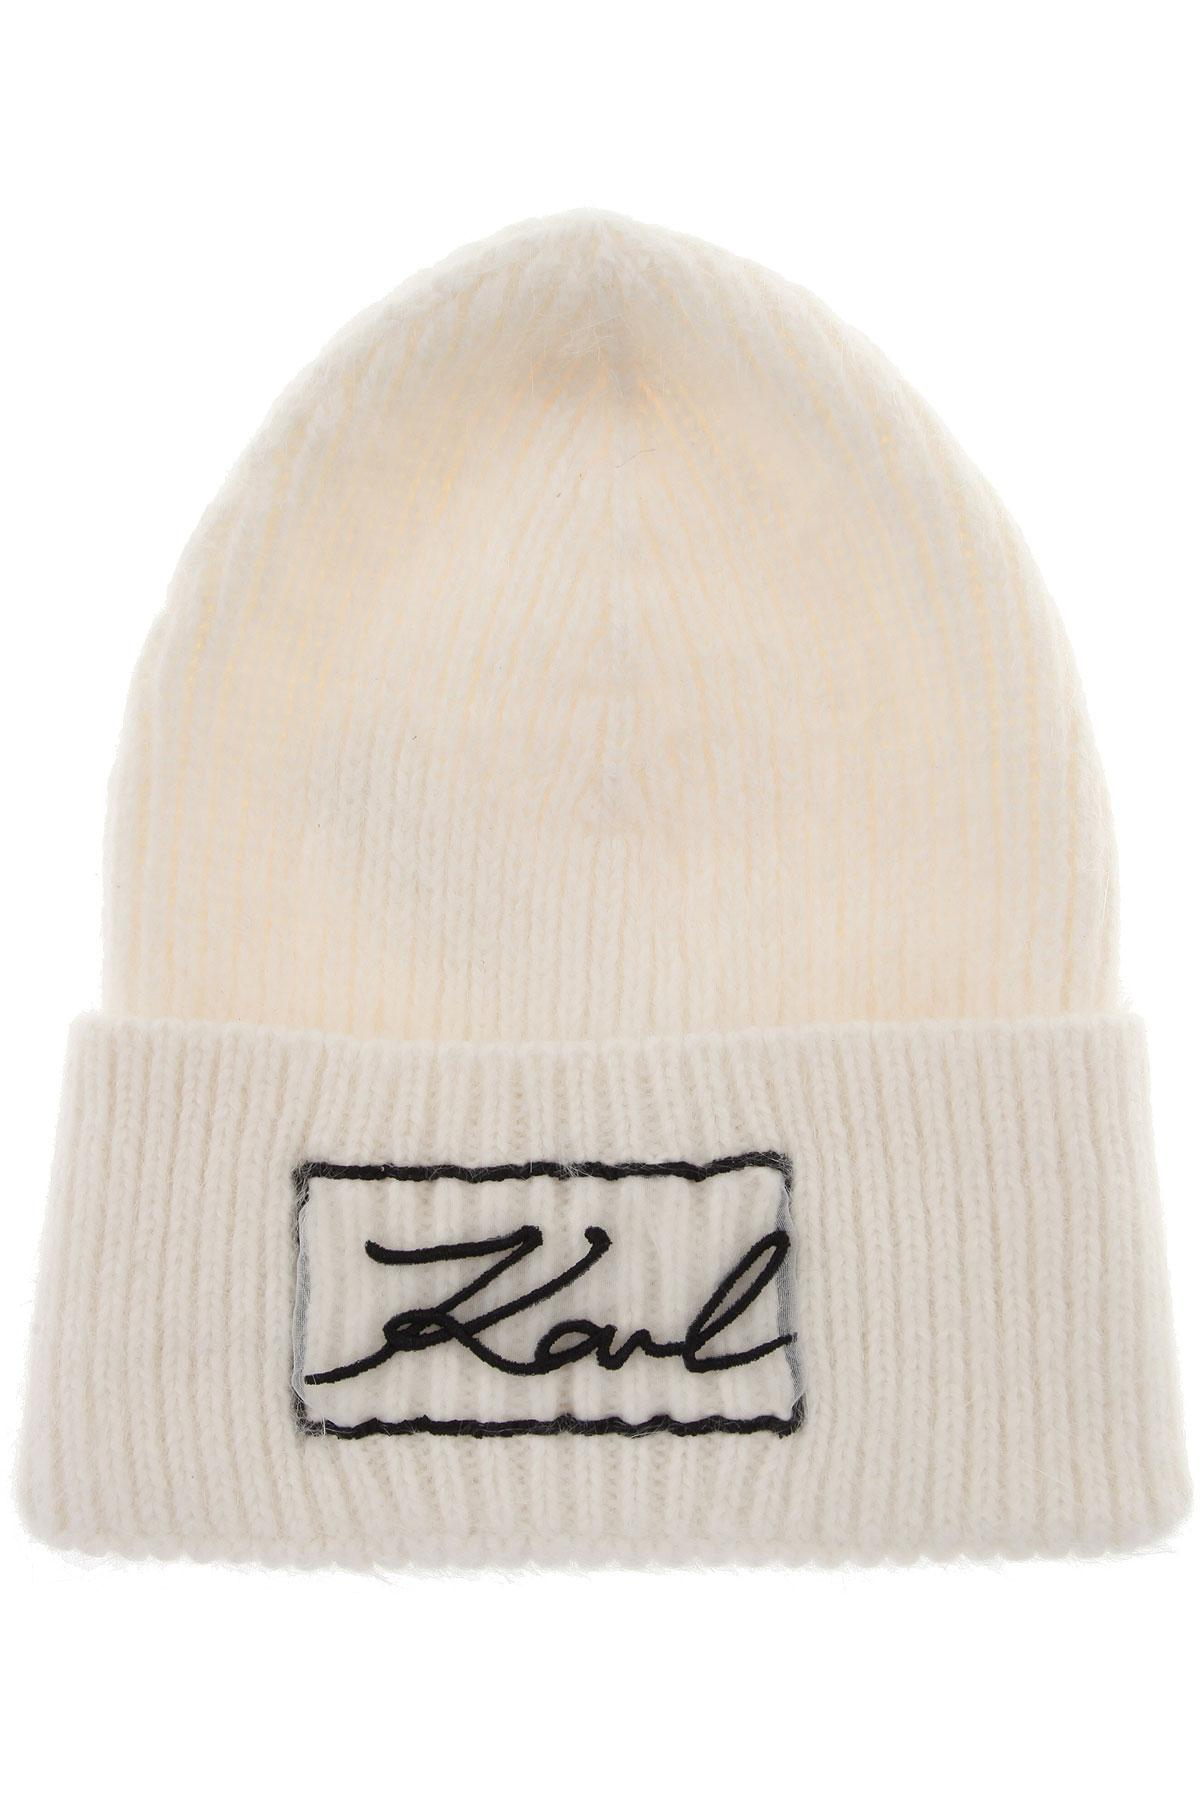 5d8593af25ab0 Karl Lagerfeld Hat For Women On Sale in White - Lyst